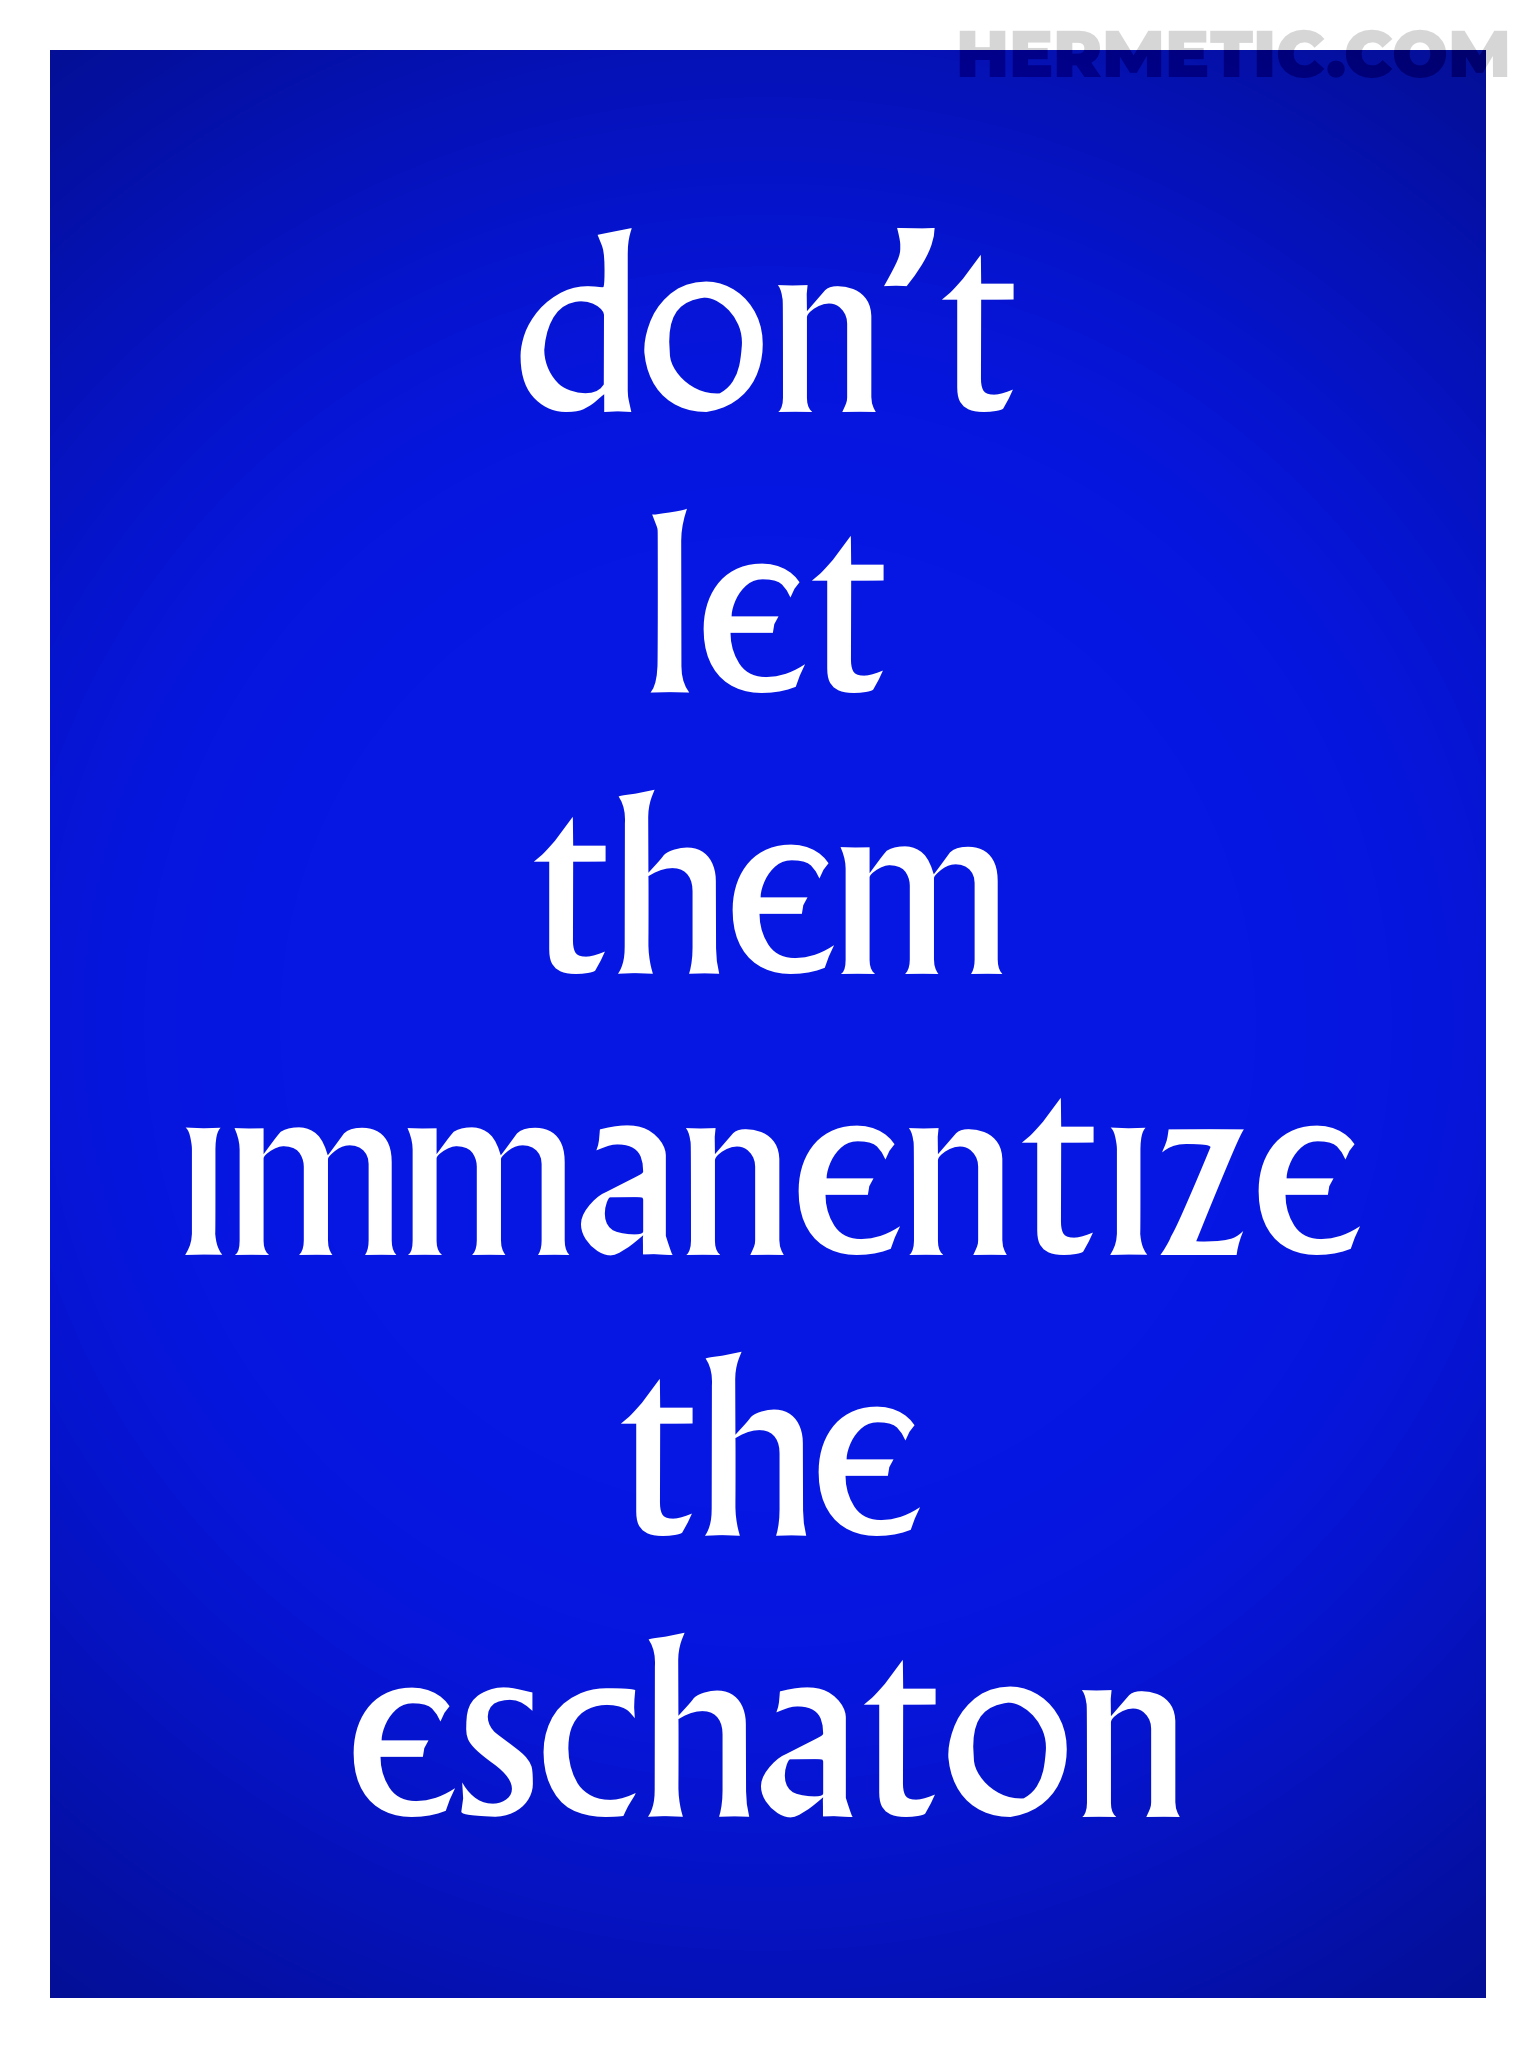 Village DON'T LET THEM IMMANENTIZE THE ESCHATON Propaganda Poster from Hermetic Library Office of the Ministry of Information